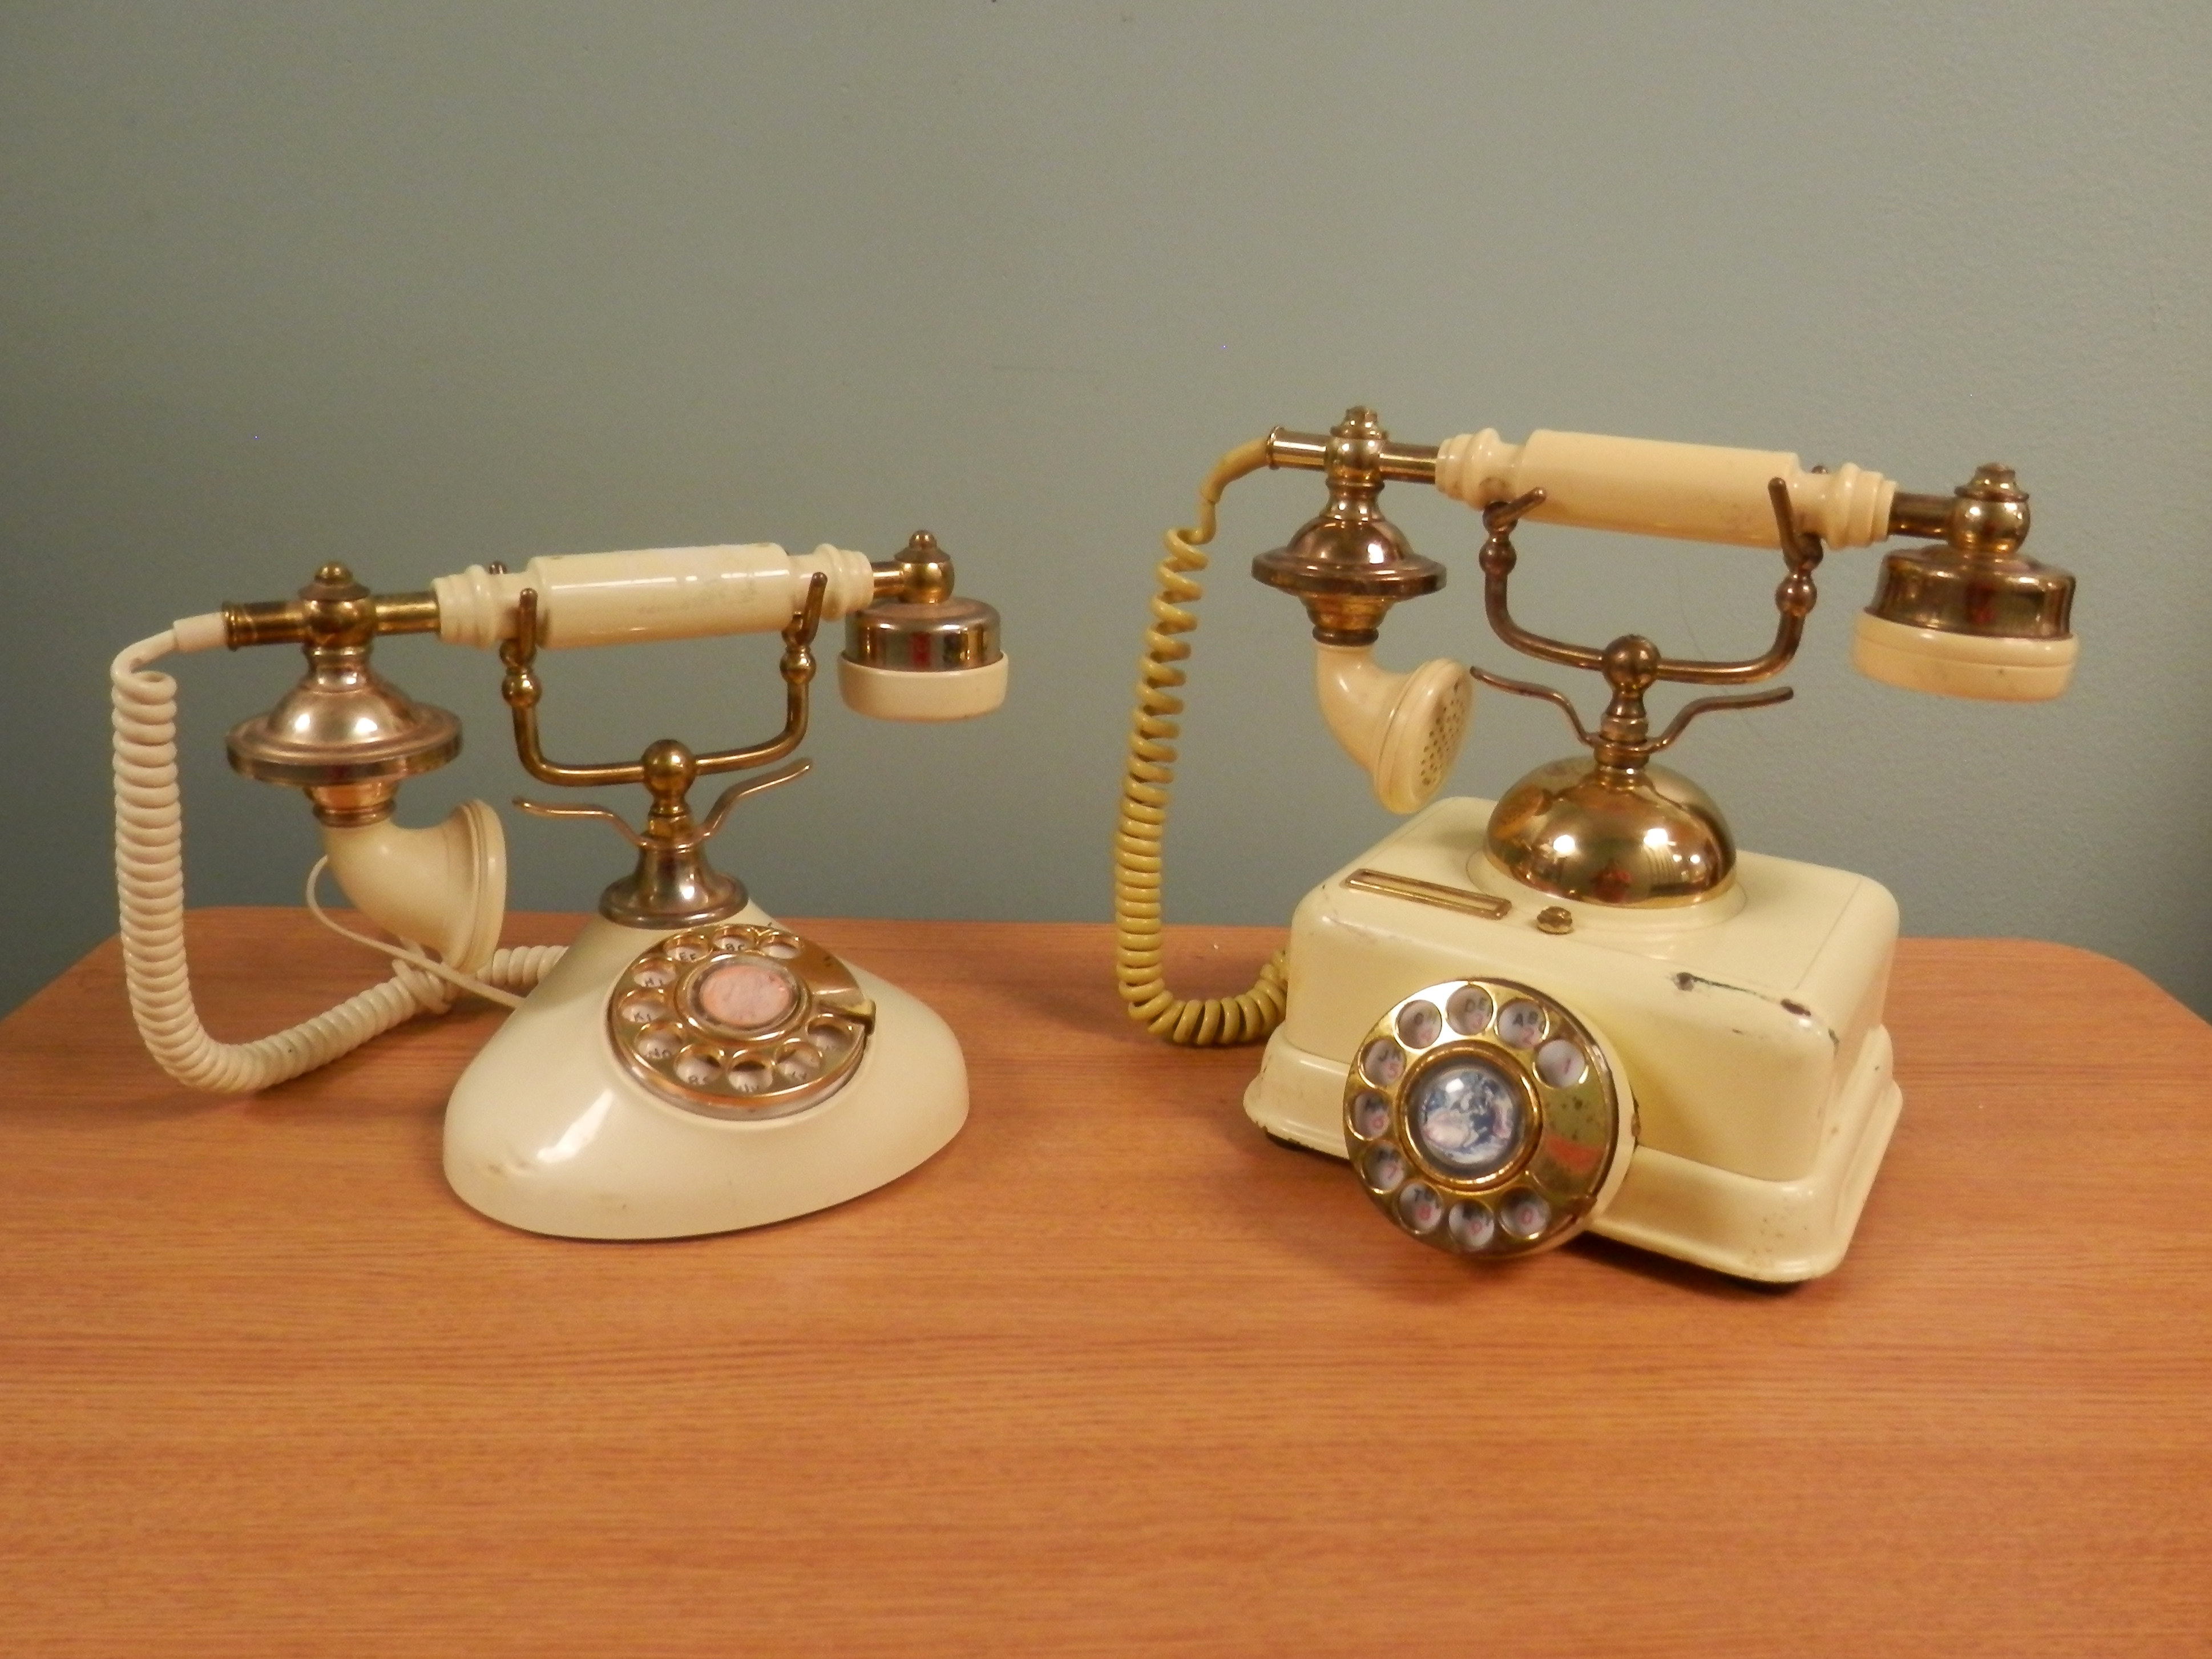 1920s Antique Phones